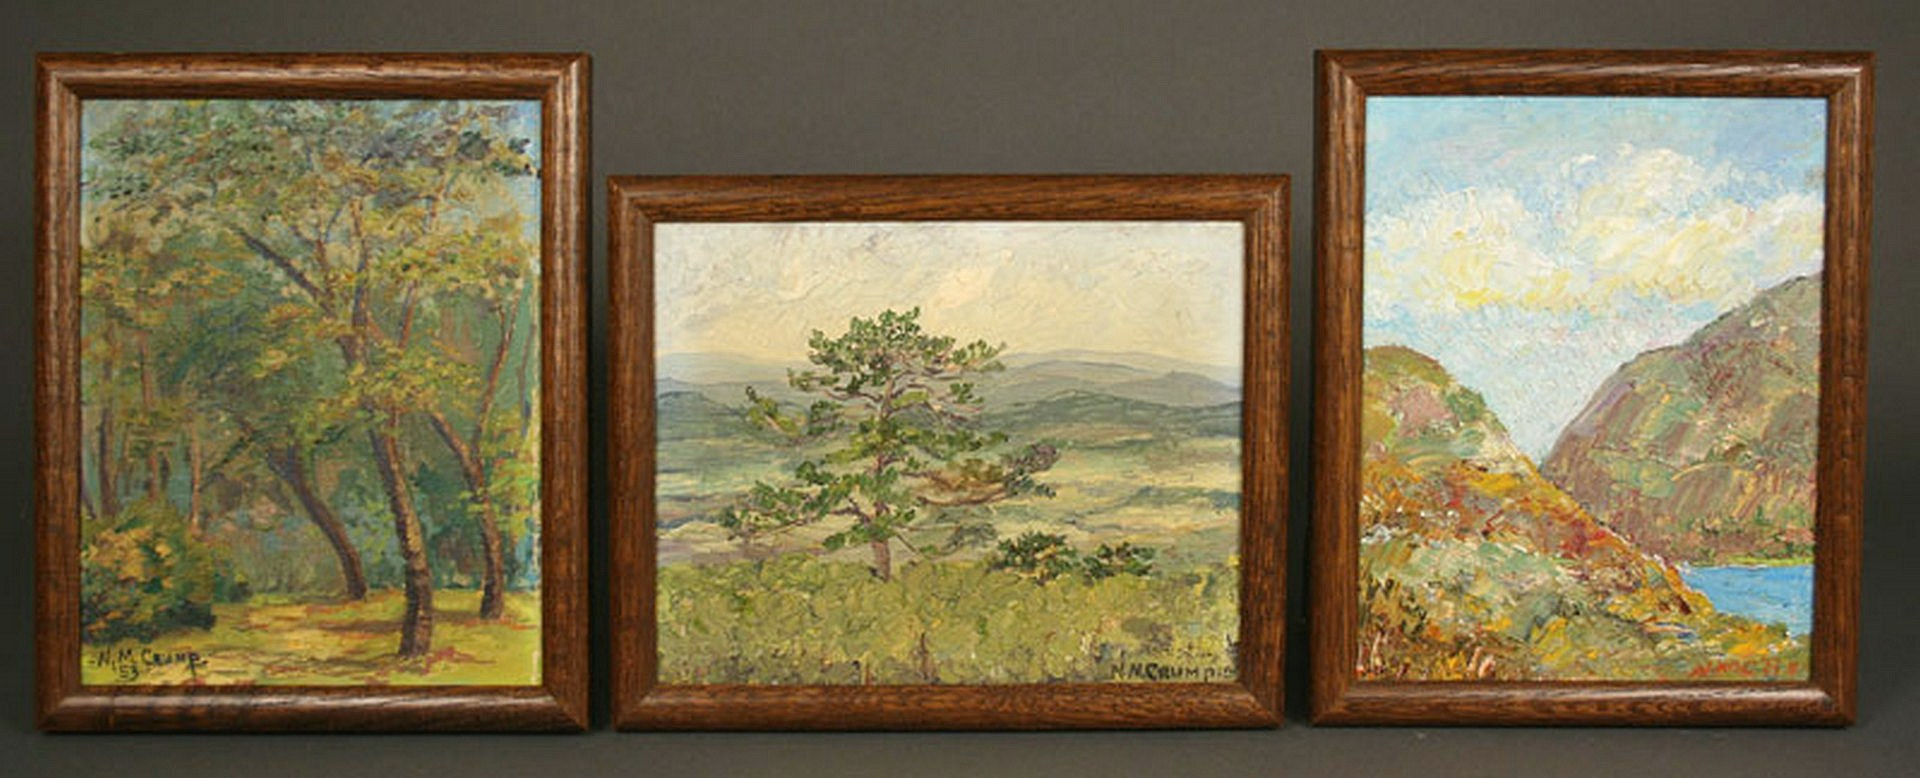 Lot 464: 3 N.M. Crump Southern Oil Paintings inc. Louisiana